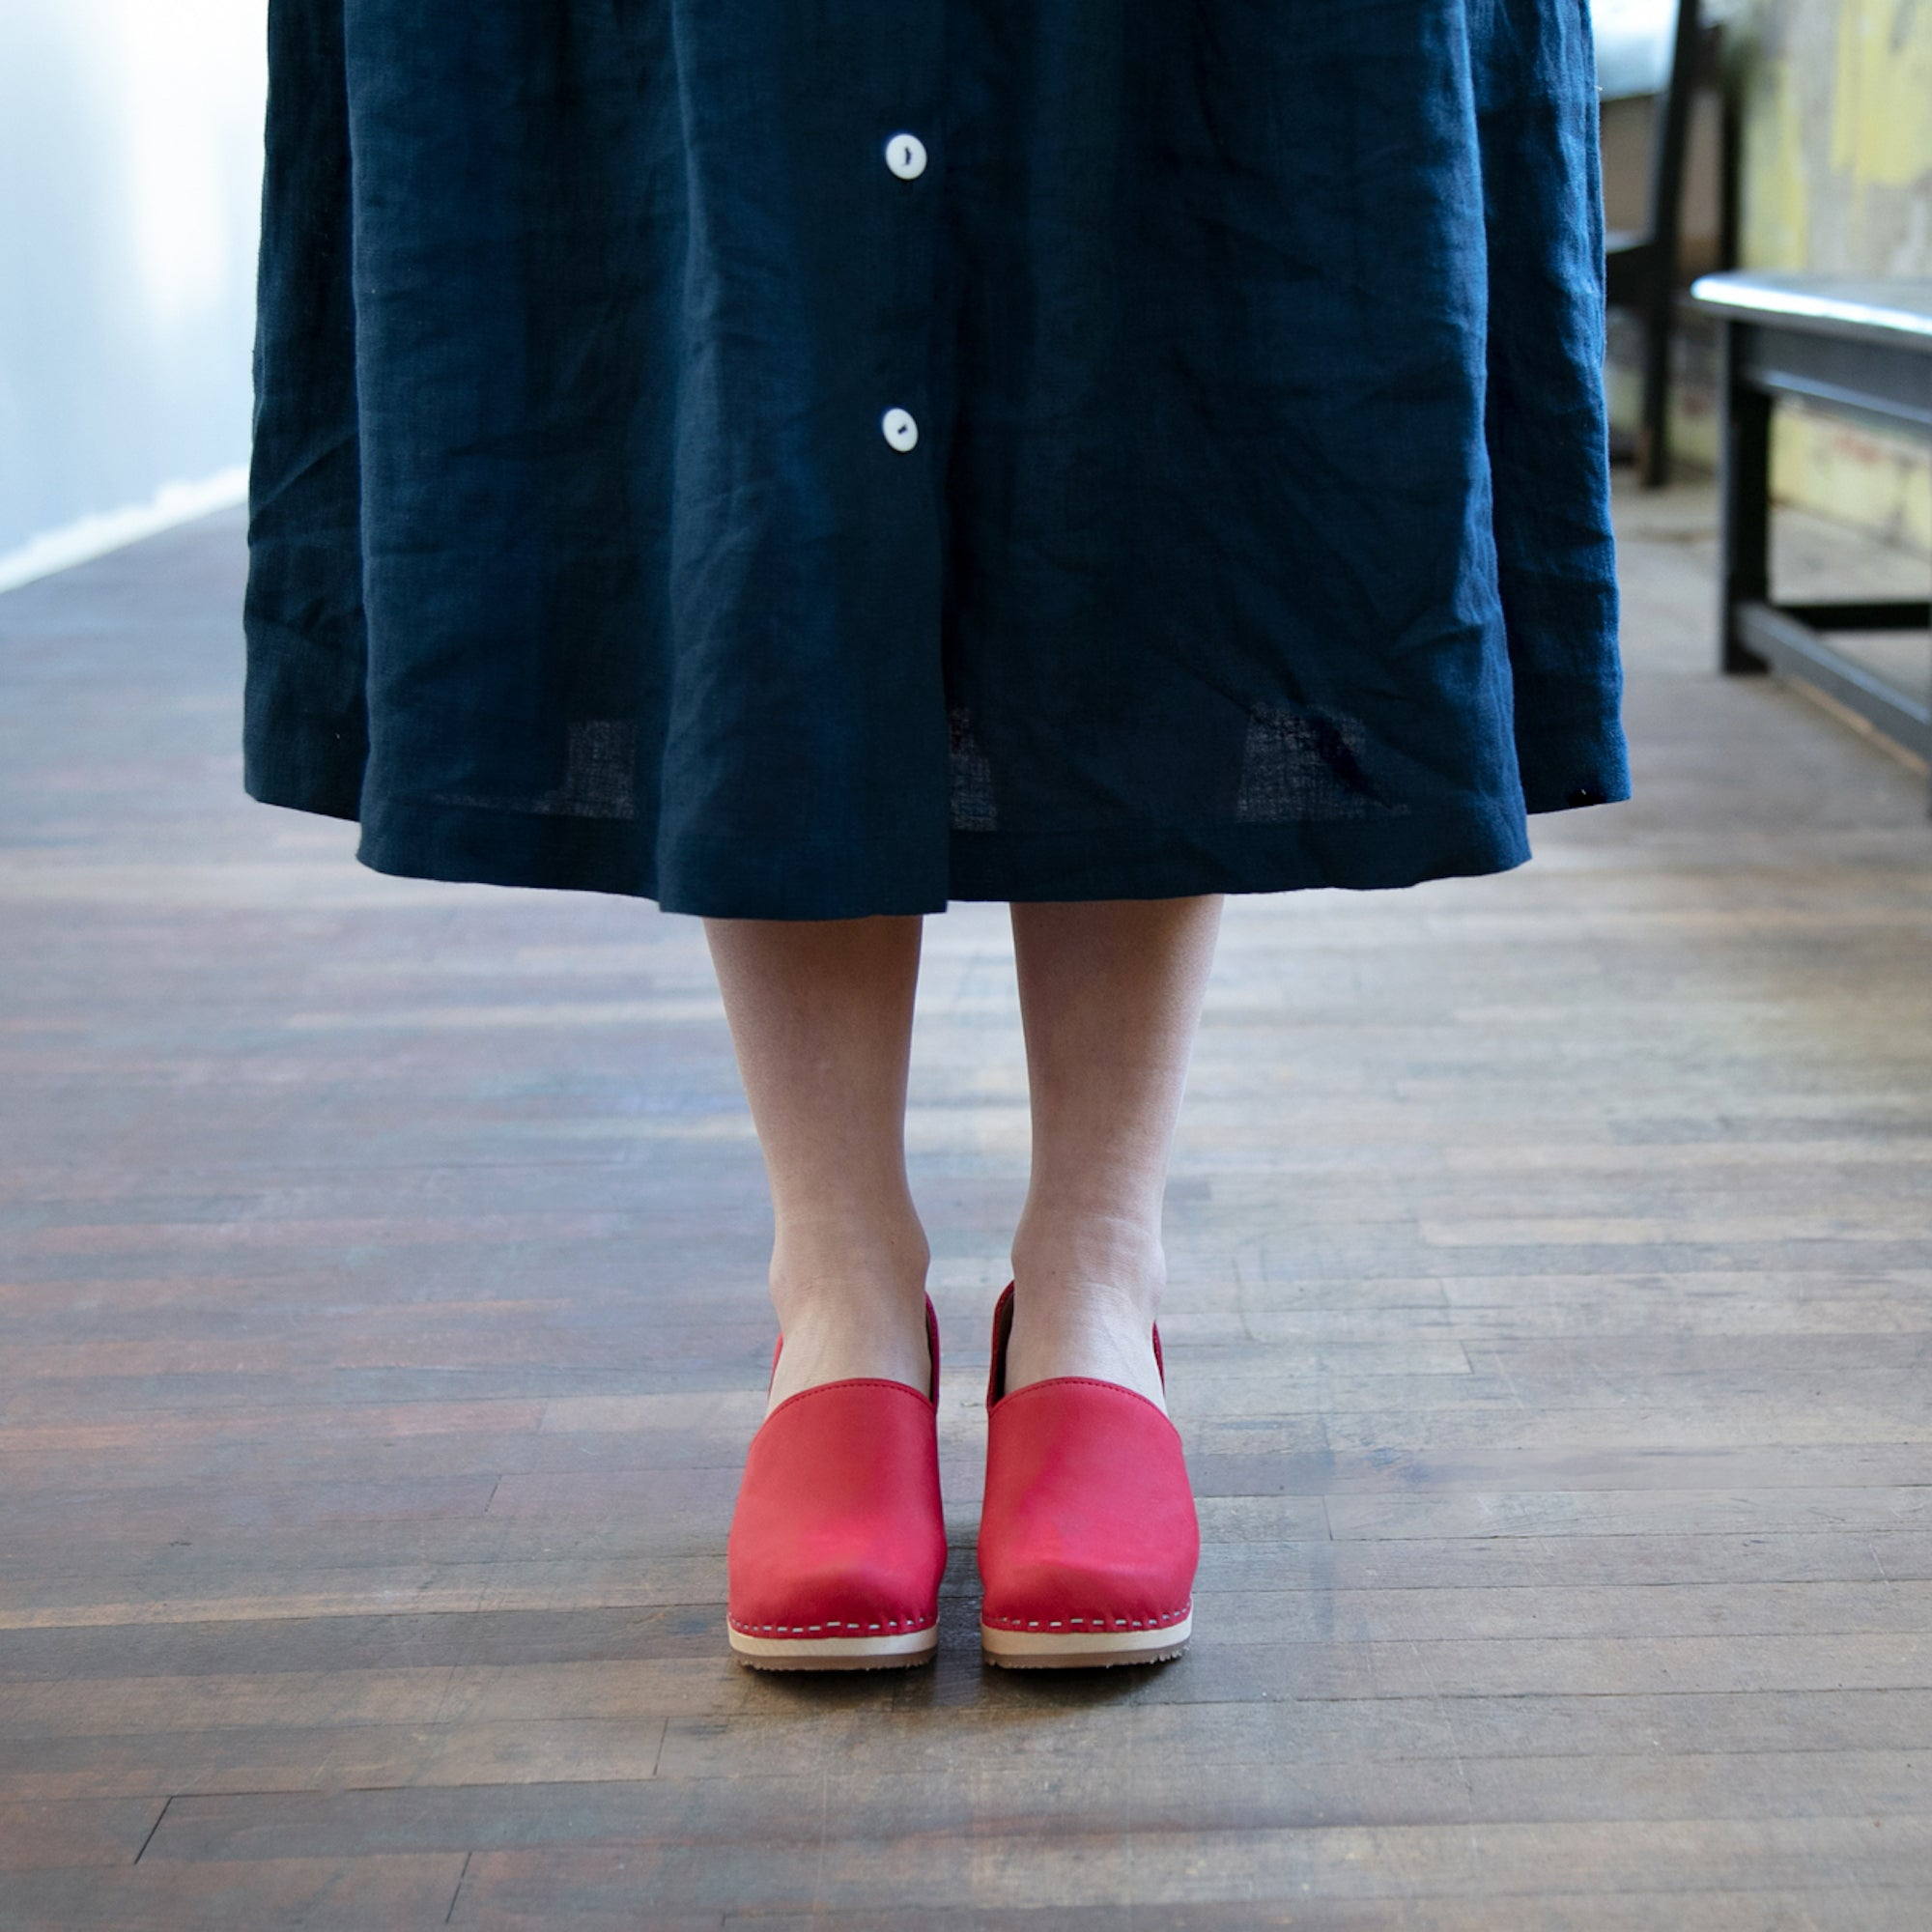 Woman in dress wearing red clogs